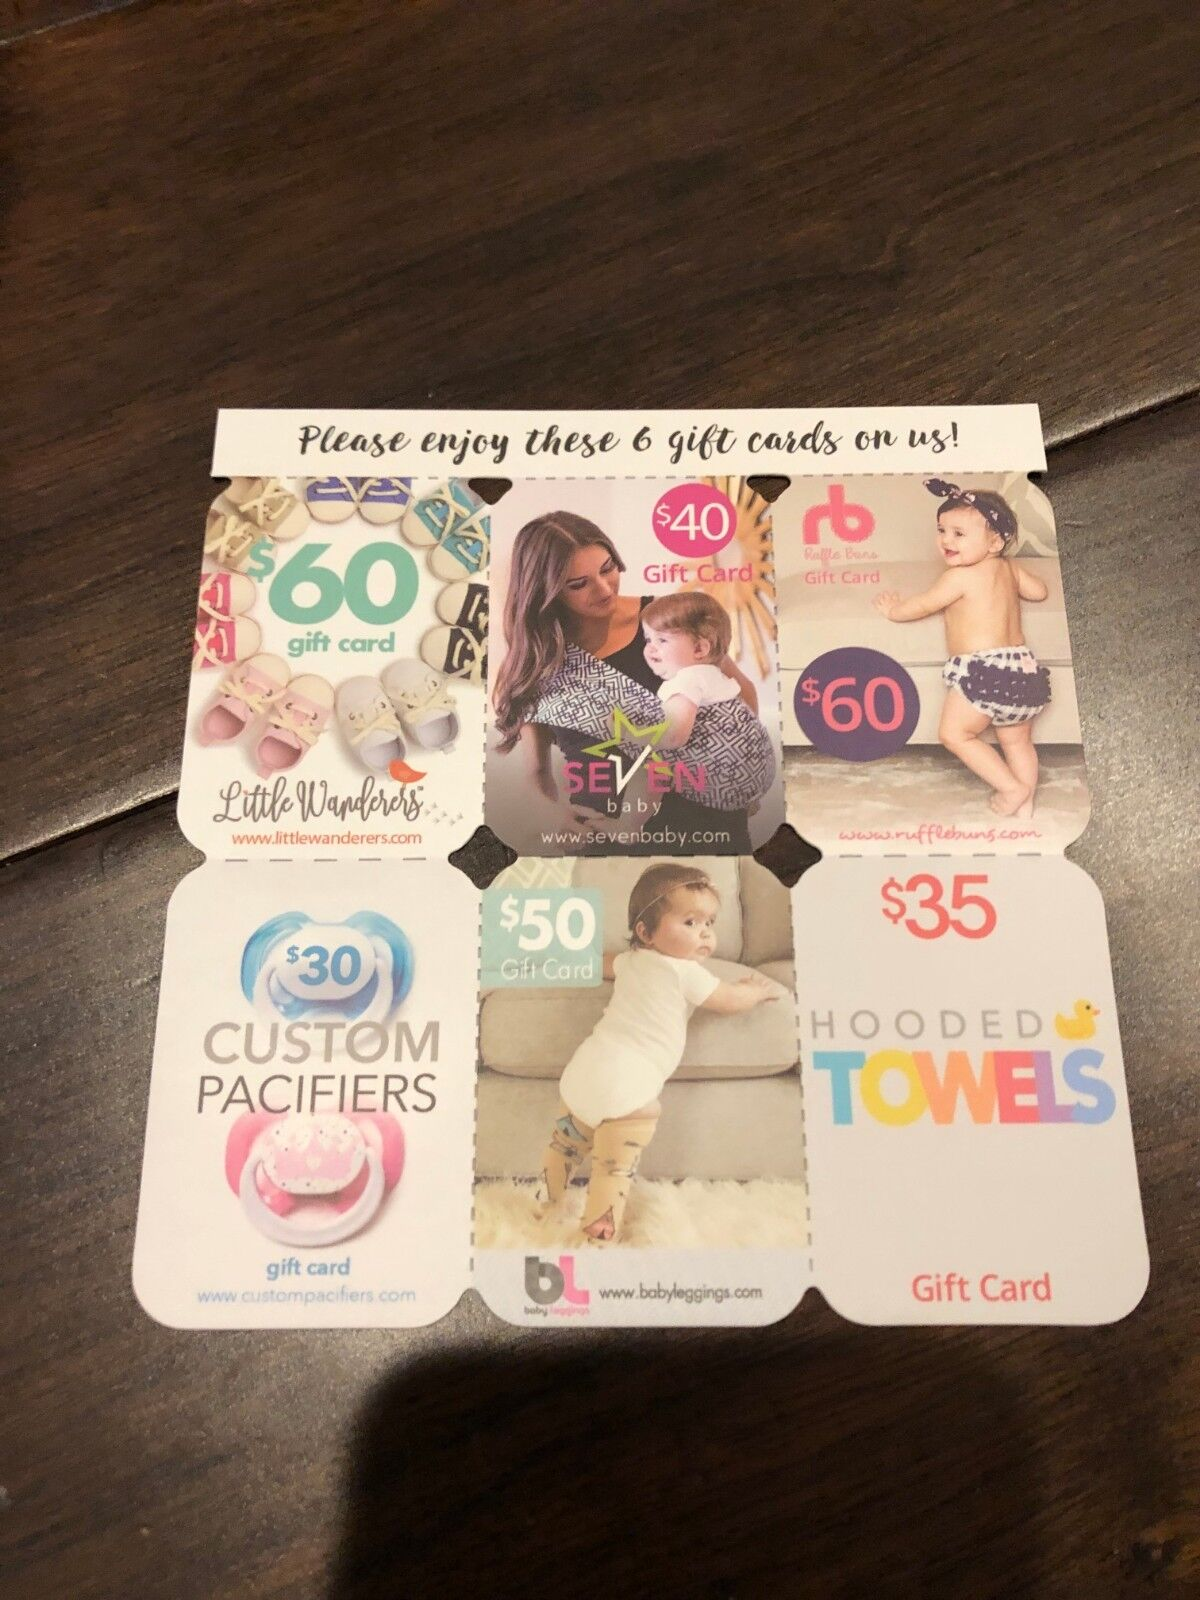 Little Wanderers / Ruffle Buns / Seven Baby / Custom Pacifiers / Gift Card Cards - $20.00